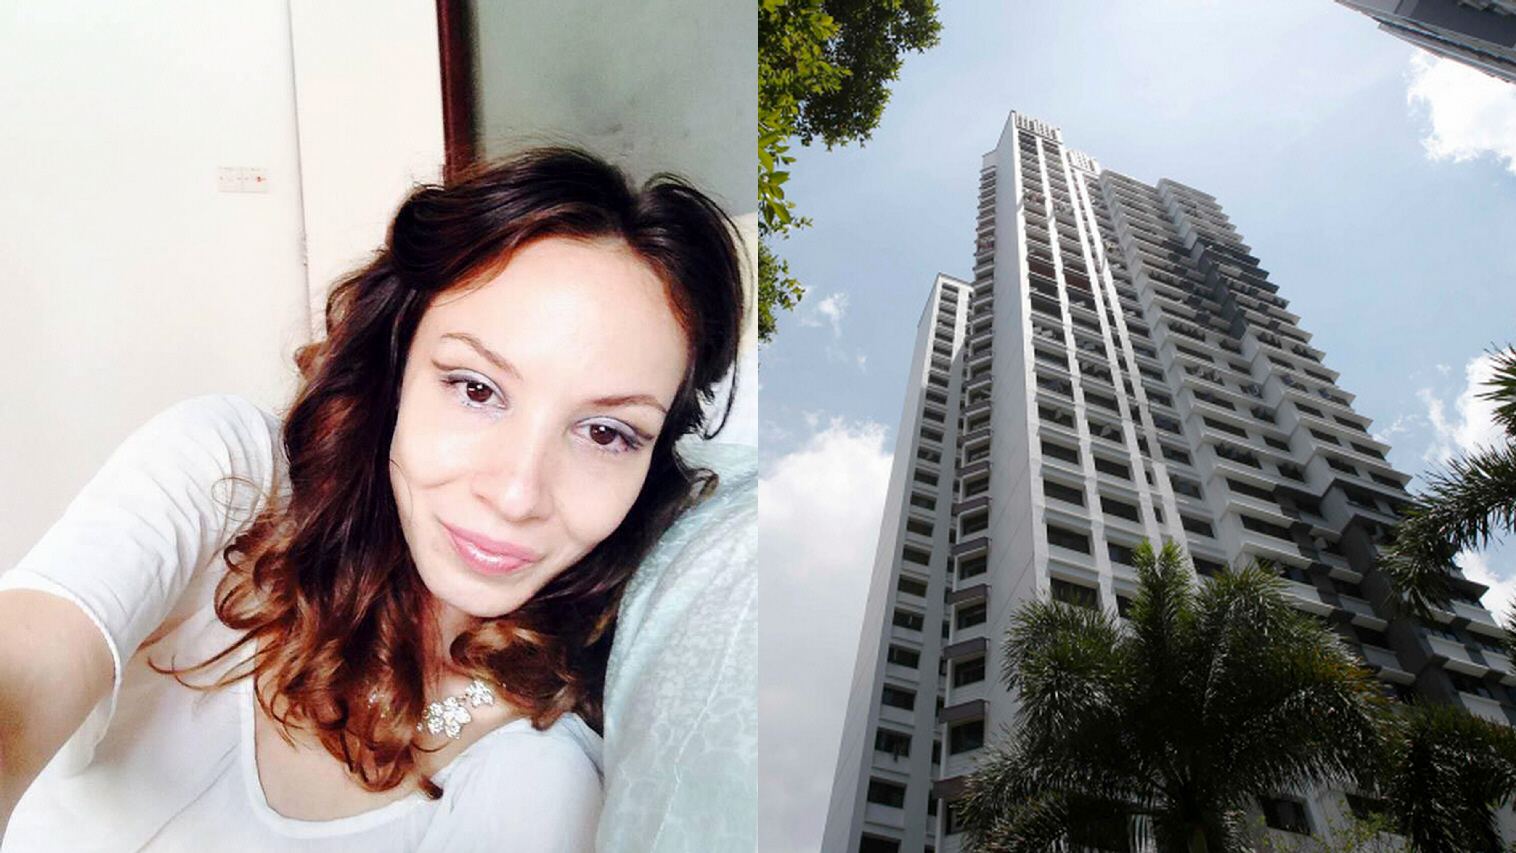 Autumn Radtke, CEO of First Meta, a cyber-currency exchange firm, was found dead outside her Singapore apartment. The 28-year-old American jumped from a 25-story building, authorities said.